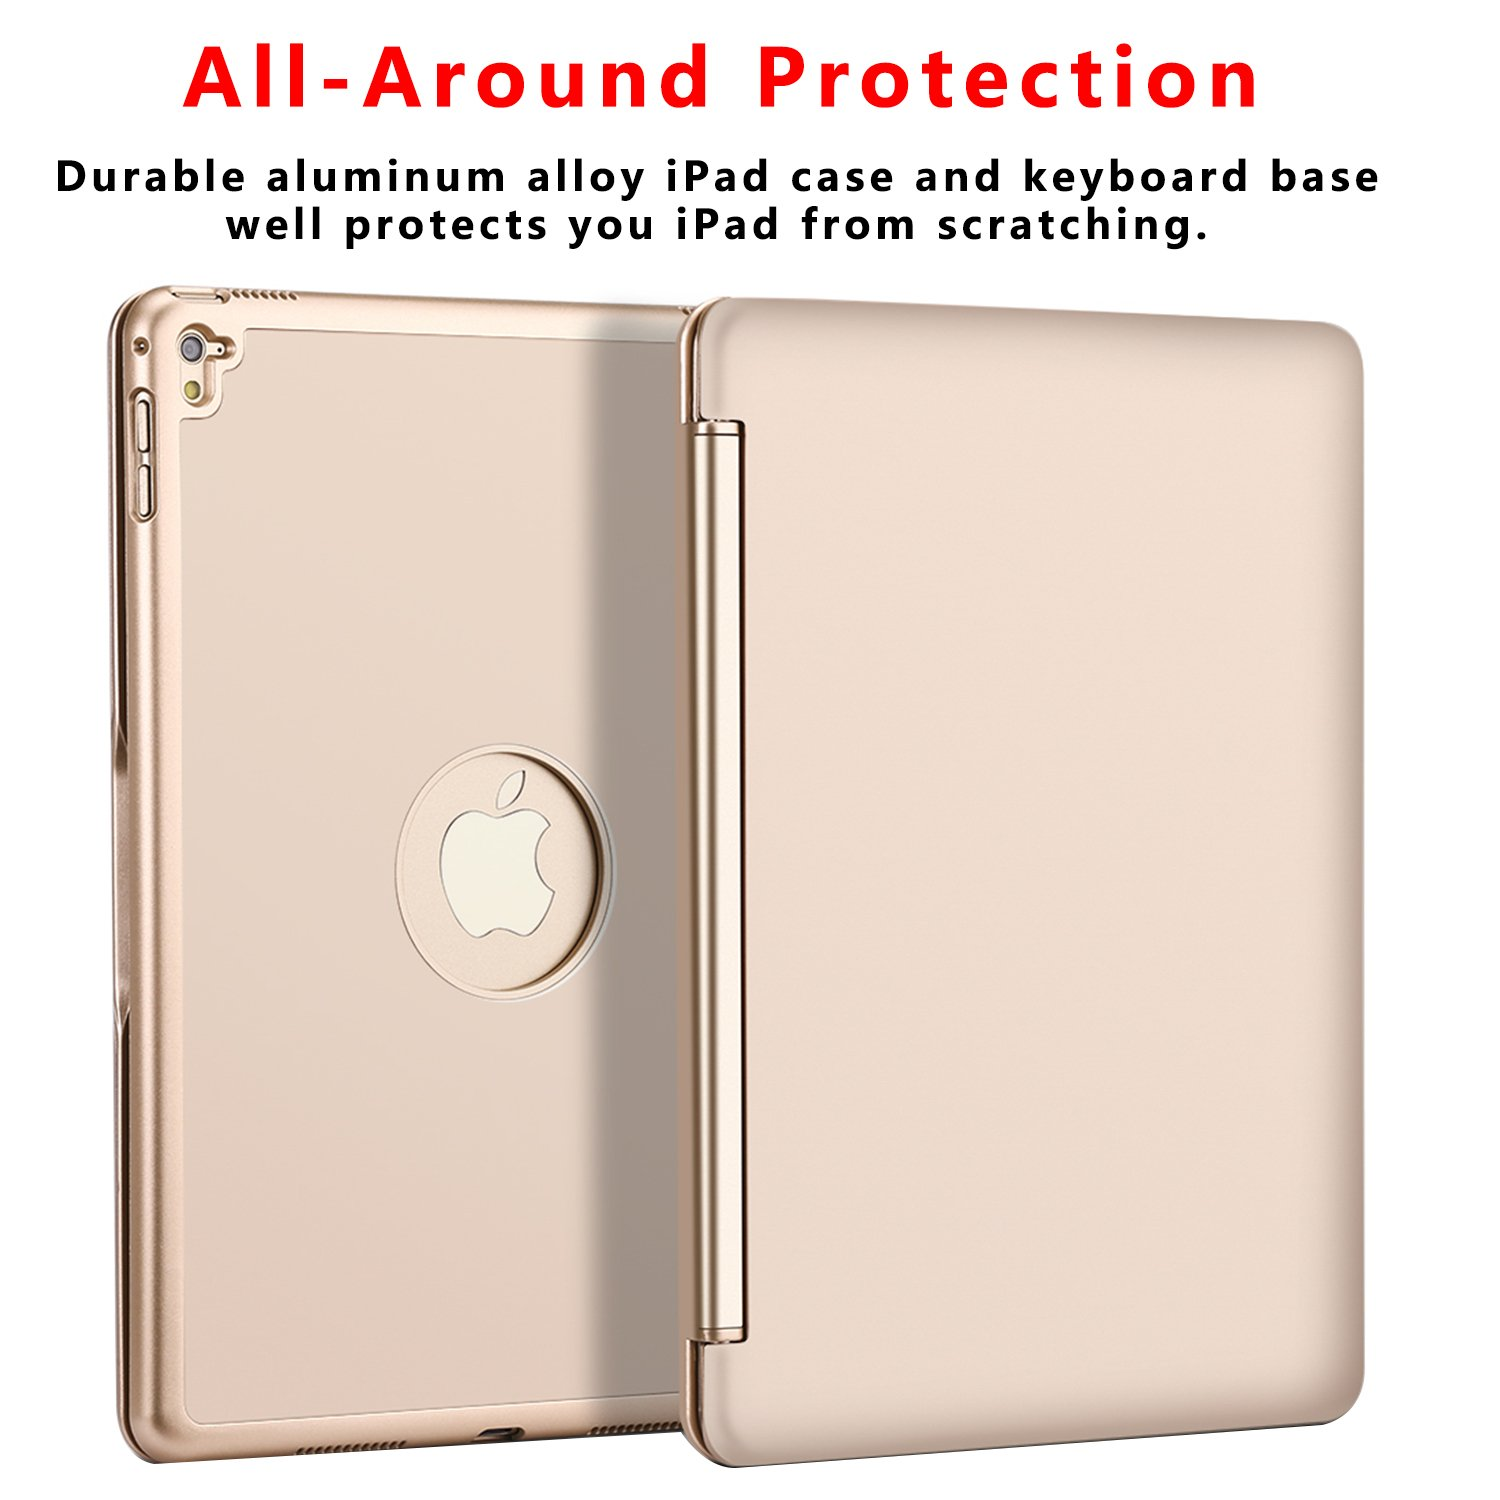 Ipad Pro 9.7 Keyboard Case, NOVT Aluminum Alloy Ultra Thin Smart Bluetooth Wireless Keyboard 7 Color Led Backlit with Protective Case Cover Stand Auto Sleep/Wake for Apple iPad Pro 9.7 Inch (Gold) by NOVT (Image #3)